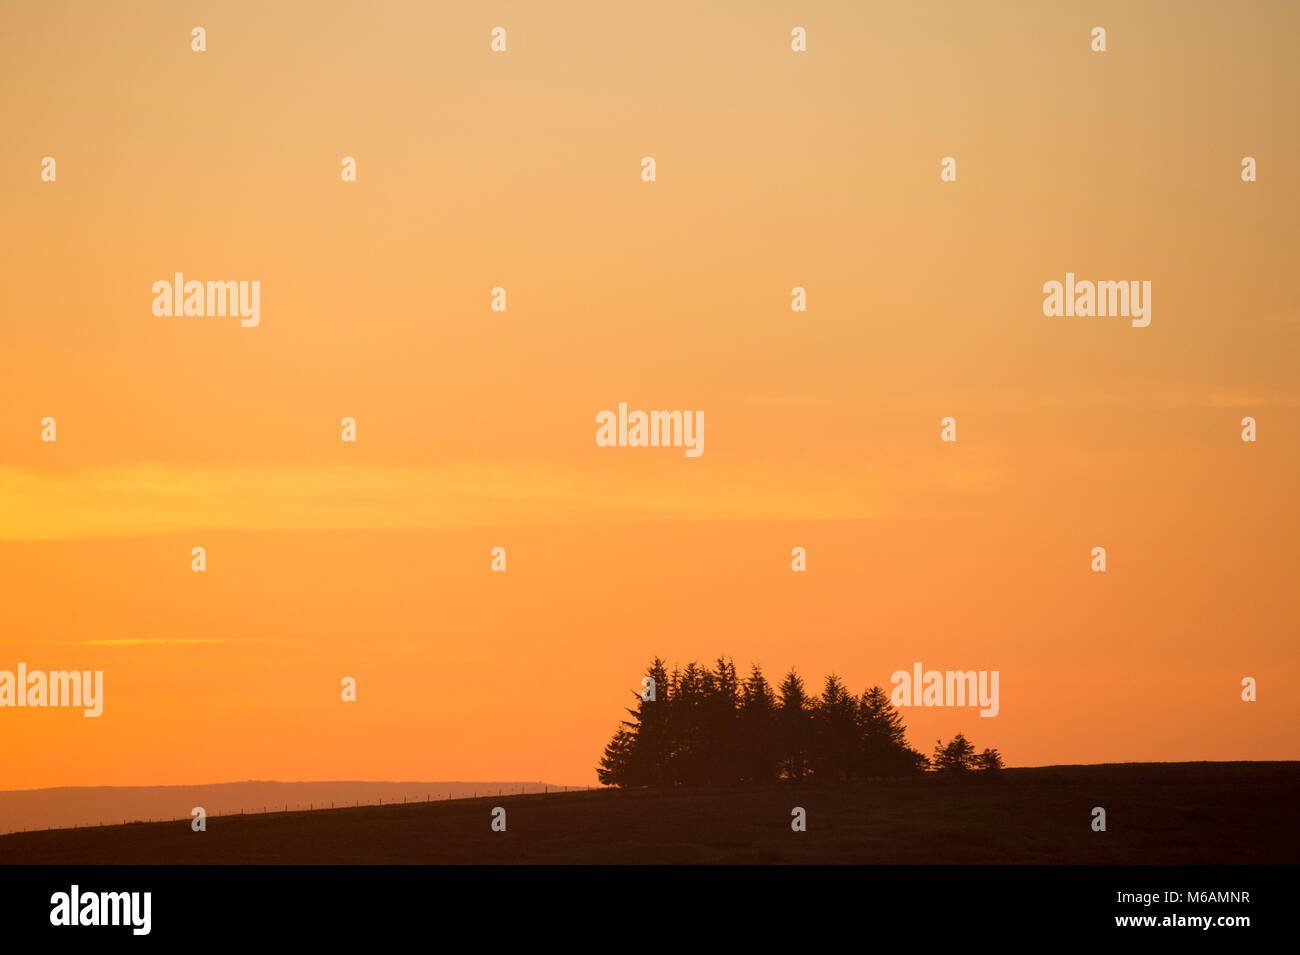 Small copse of conifer trees seen in silhouette against a dramatic, bright, colourful orange sky at sunset - near - Stock Image